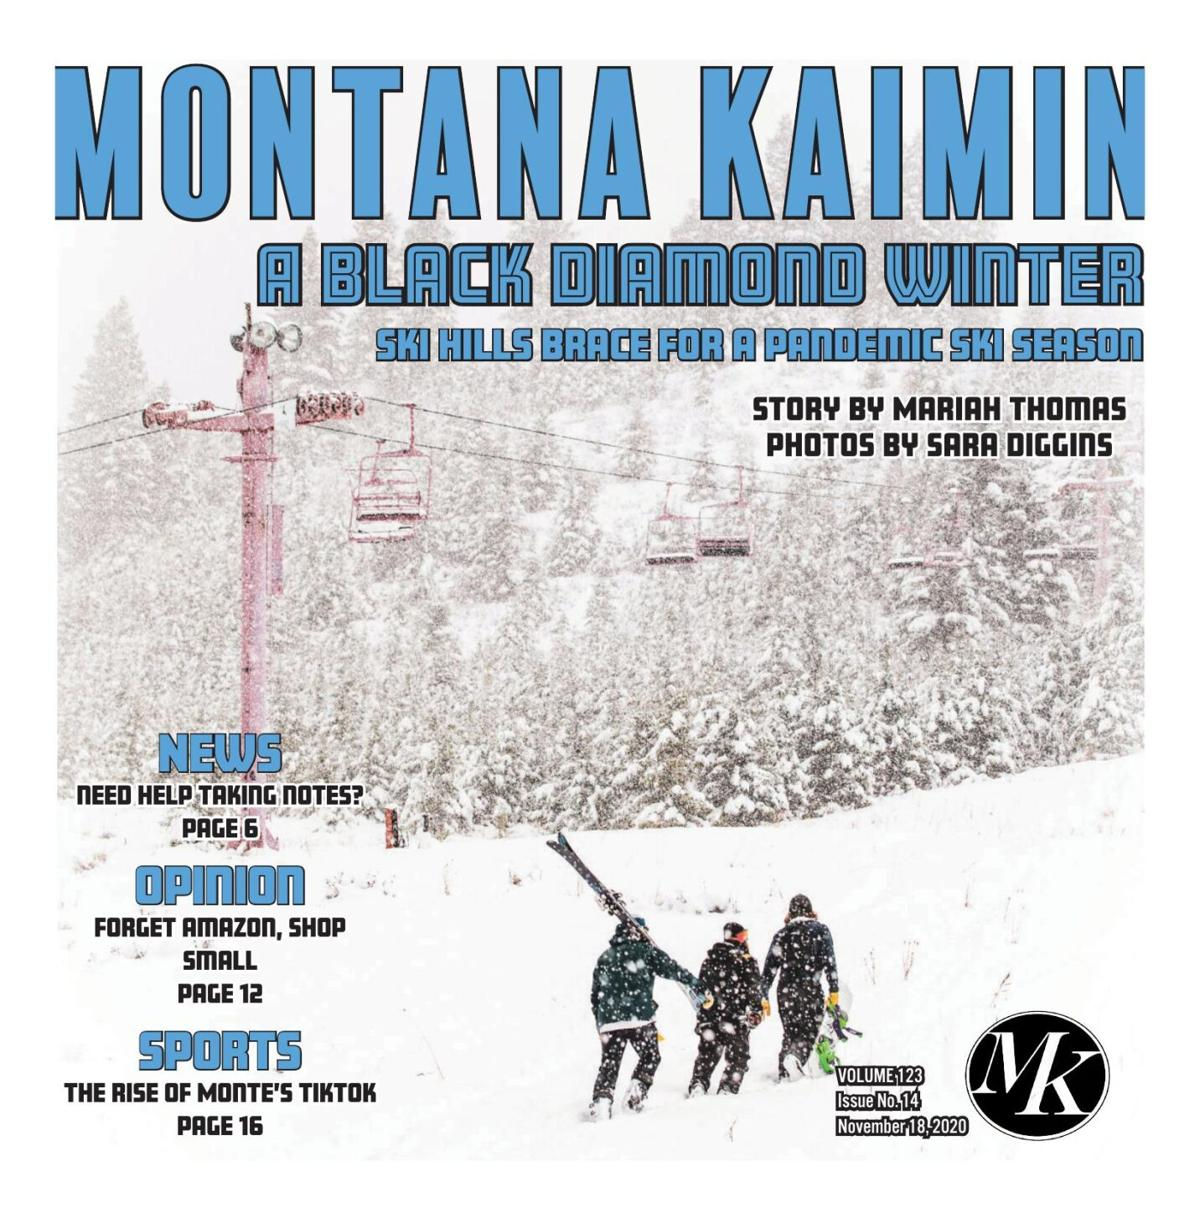 Montana Kaimin | Vol 123 Issue no. 014 11.18.2020